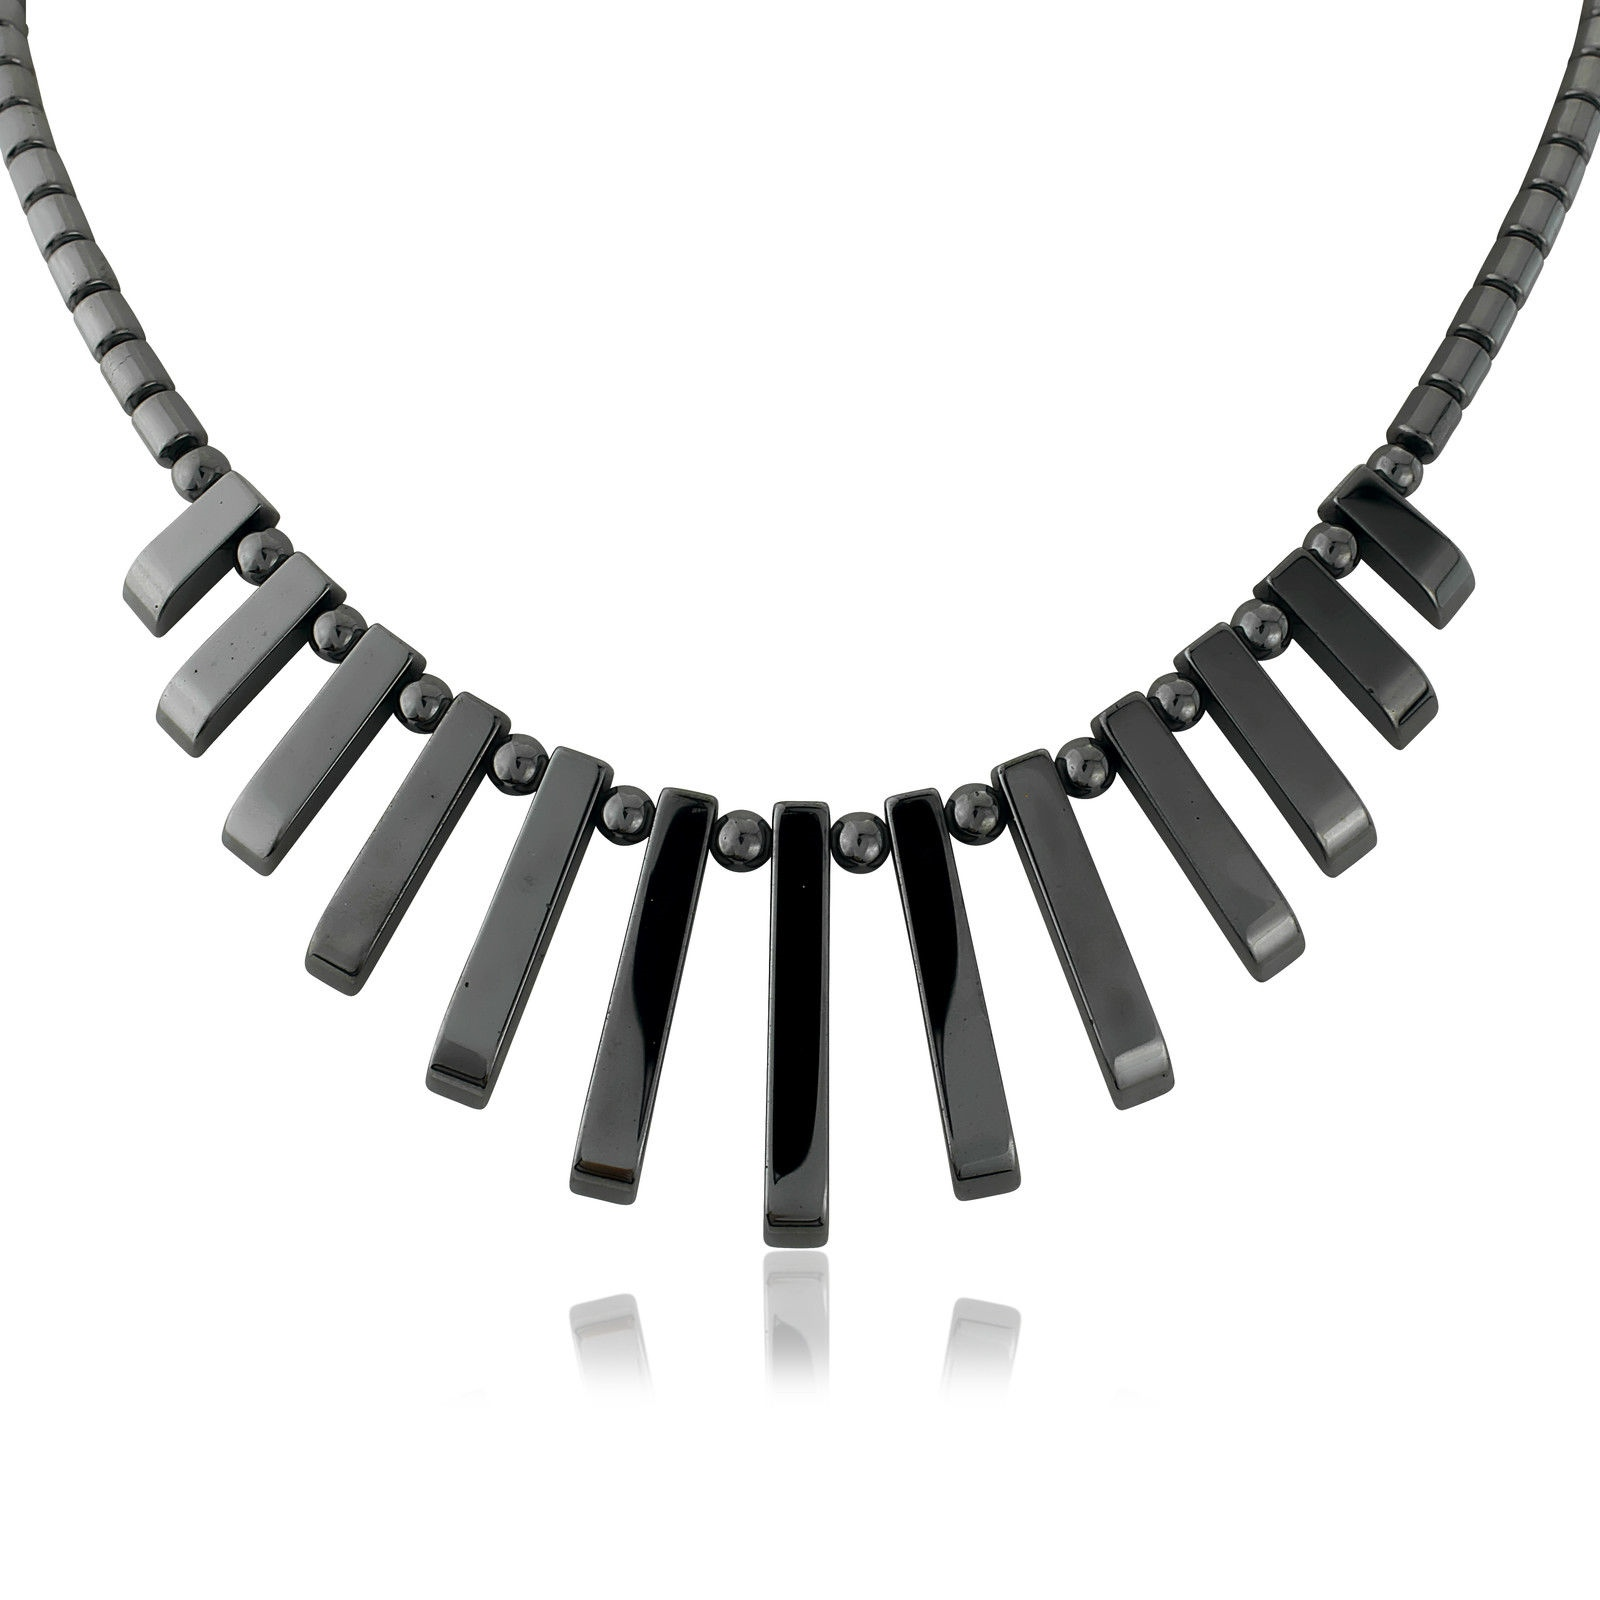 Art Deco Style Earrings Uk Details About Black Gun Metal Choker Necklace Spike Art Deco Style Costume Jewellery Uk Item